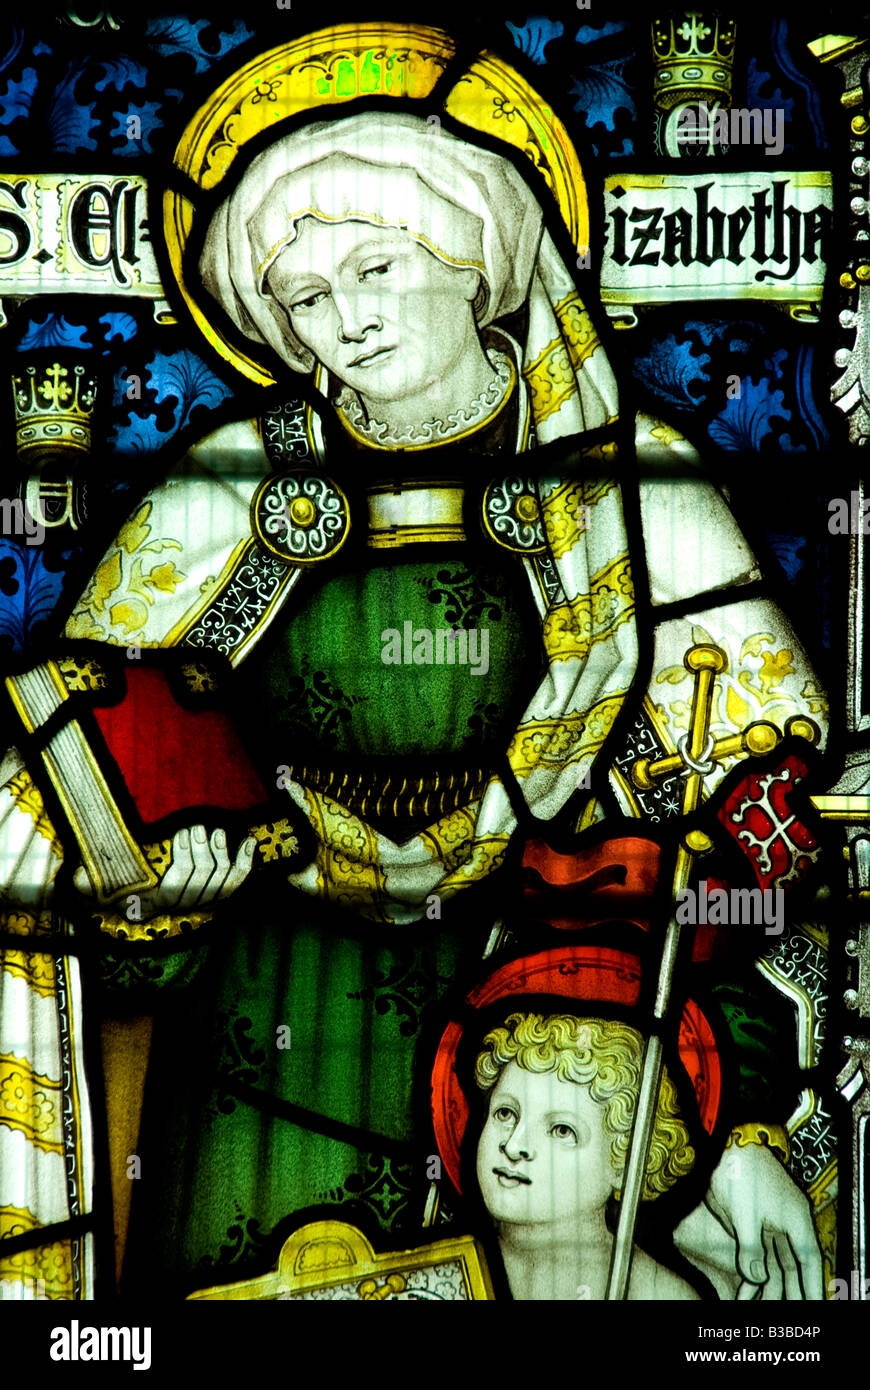 St.Elizabeth and the child Jesus depiced in the stained glass of the 13th century St.George church Woolhope Herefordshire Stock Photo